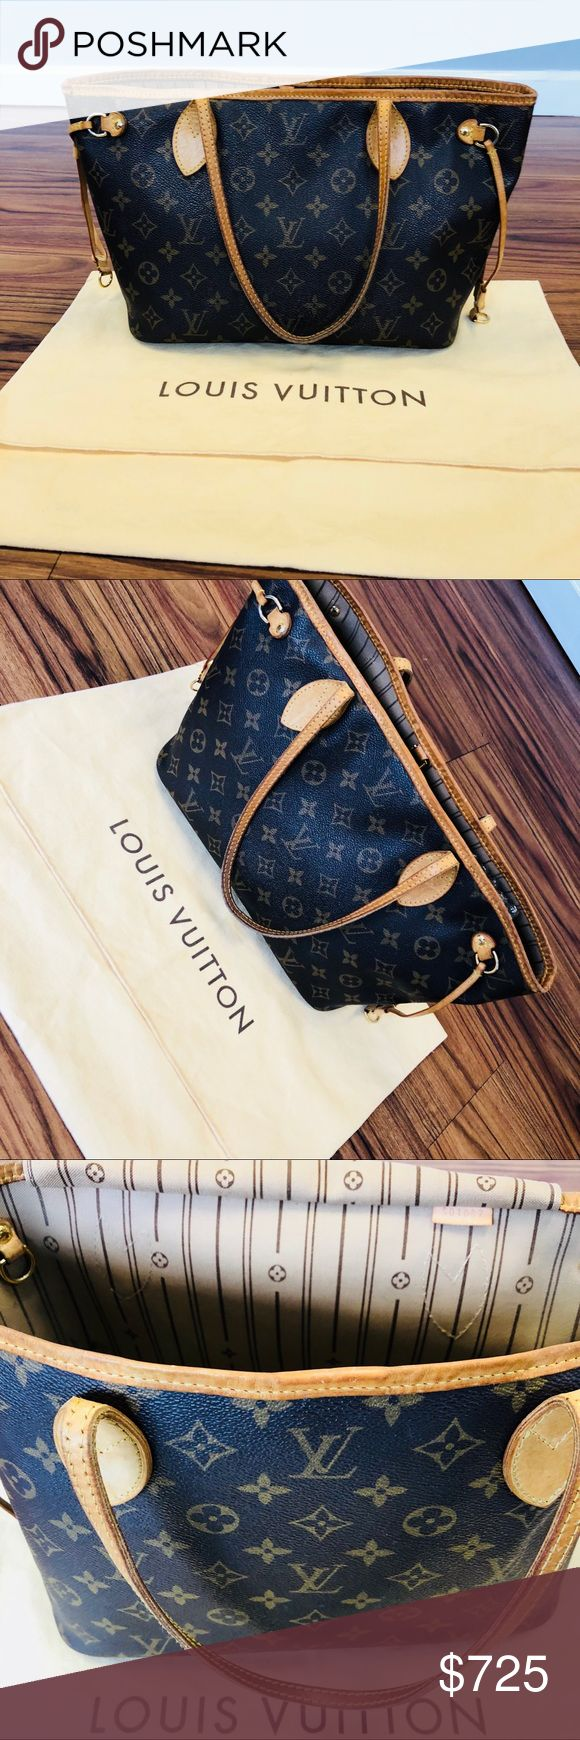 Louis Vuitton Neverfull PM Authentic Louis Vuitton Neverfull PM, very good used condition. Outside very clean, no damages, minor stains inside and peeling in the inside pocket. Comes with dustbag, no box. Poshmark will authenticate for purchases over $500 Louis Vuitton Bags Shoulder Bags